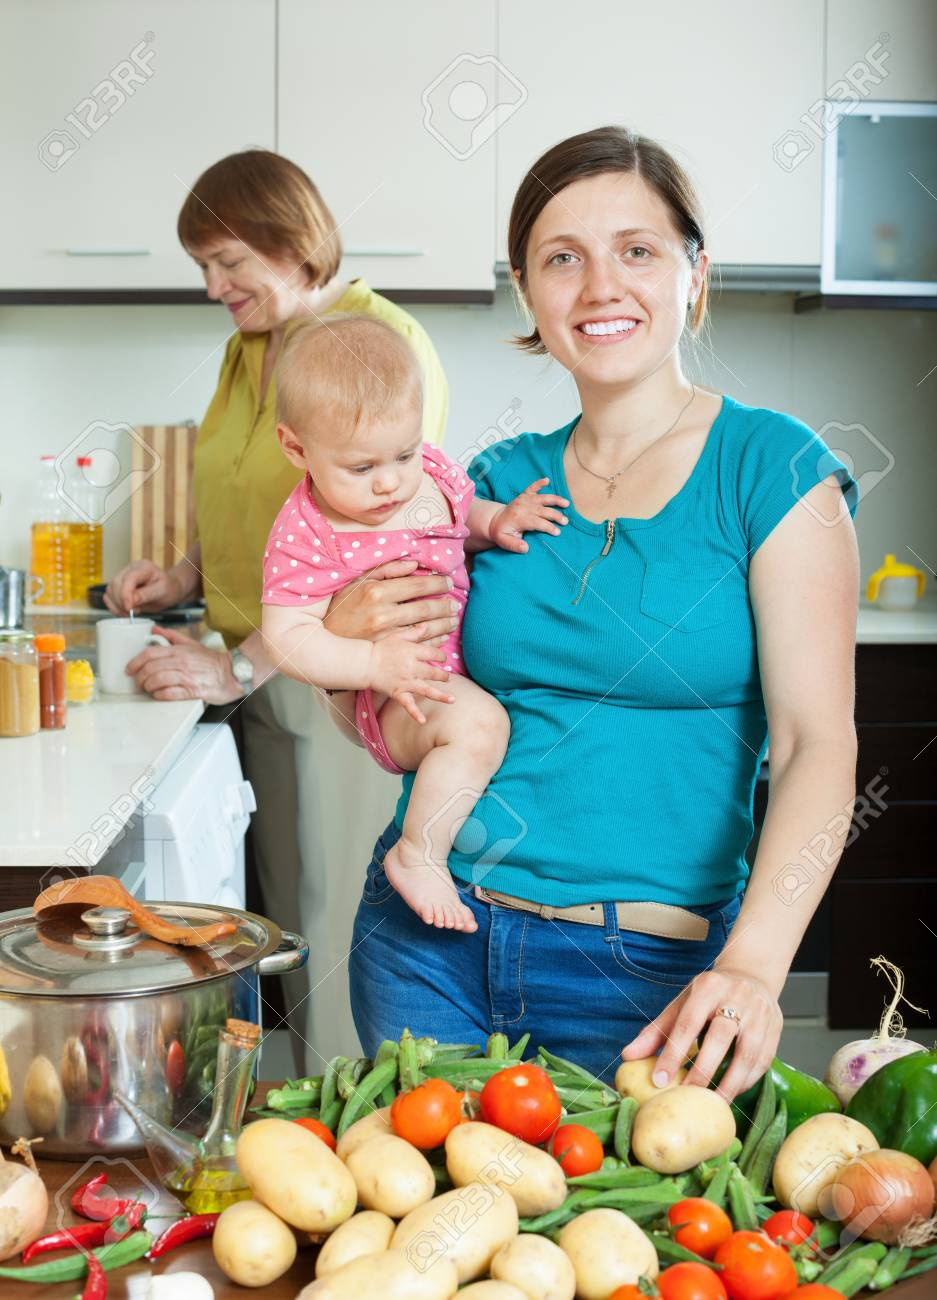 Happy Women Of Three Generations In Domestic Kitchen Stock Photo ...